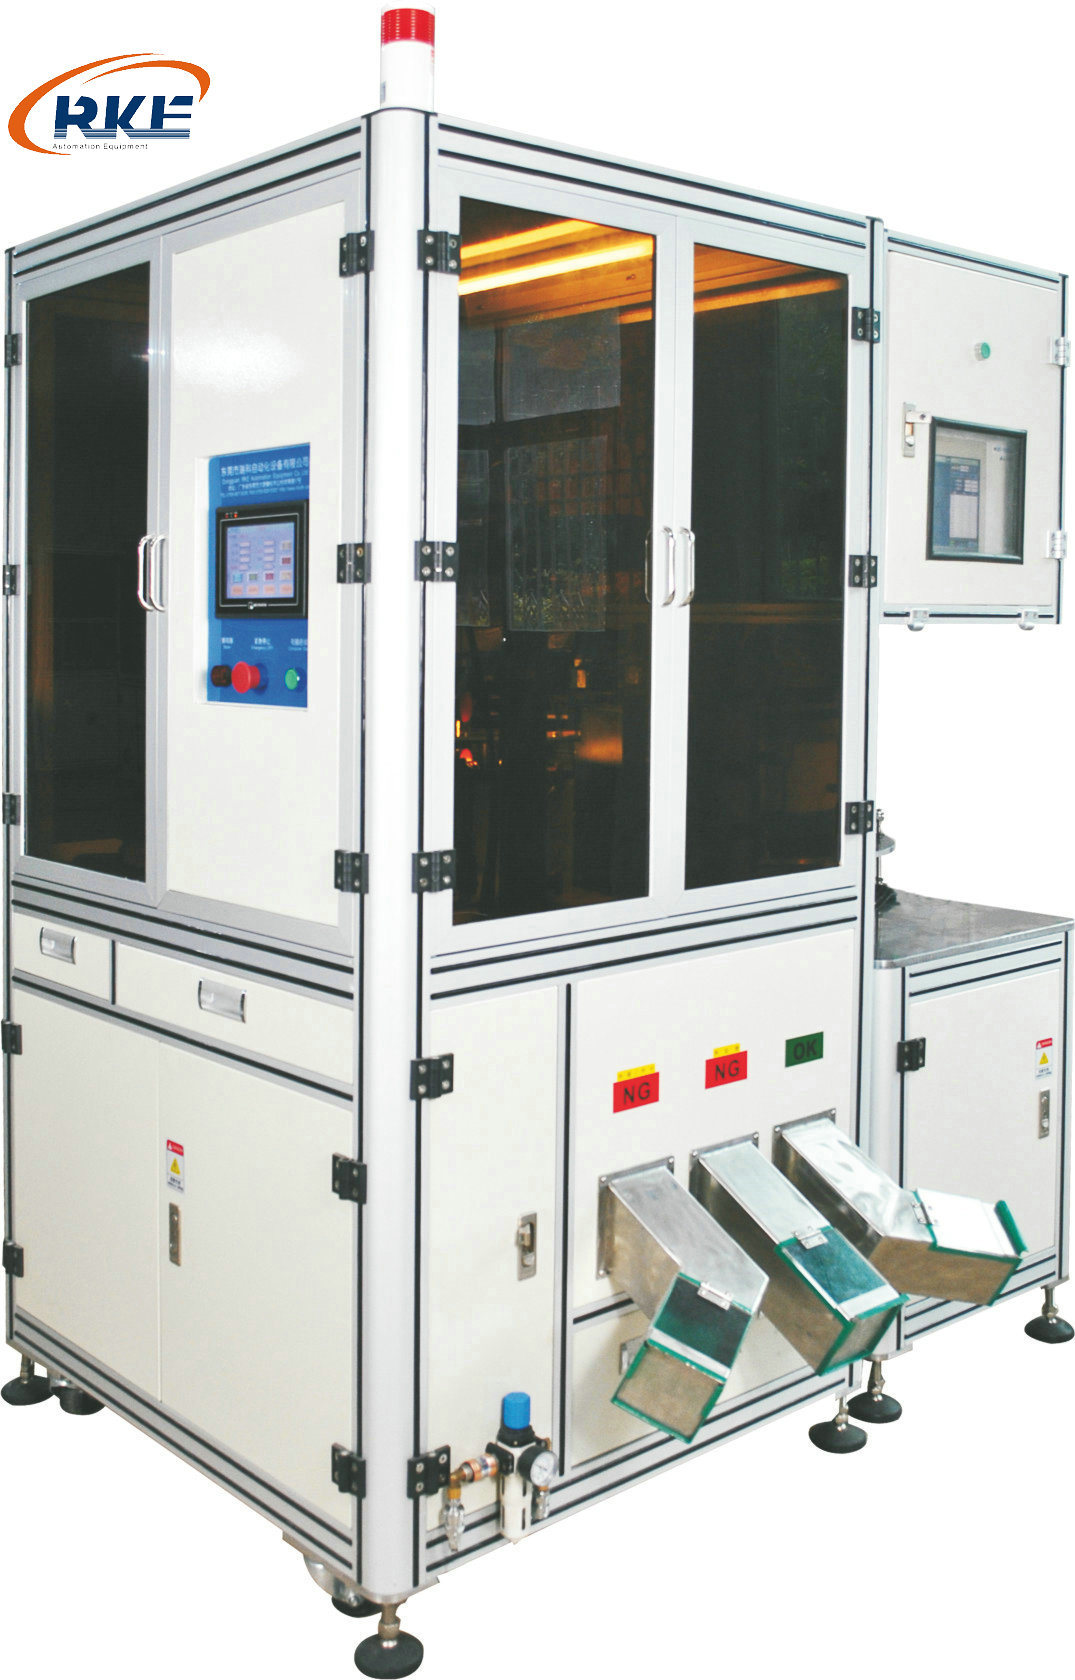 Fastener Inspection and Sorting Machine